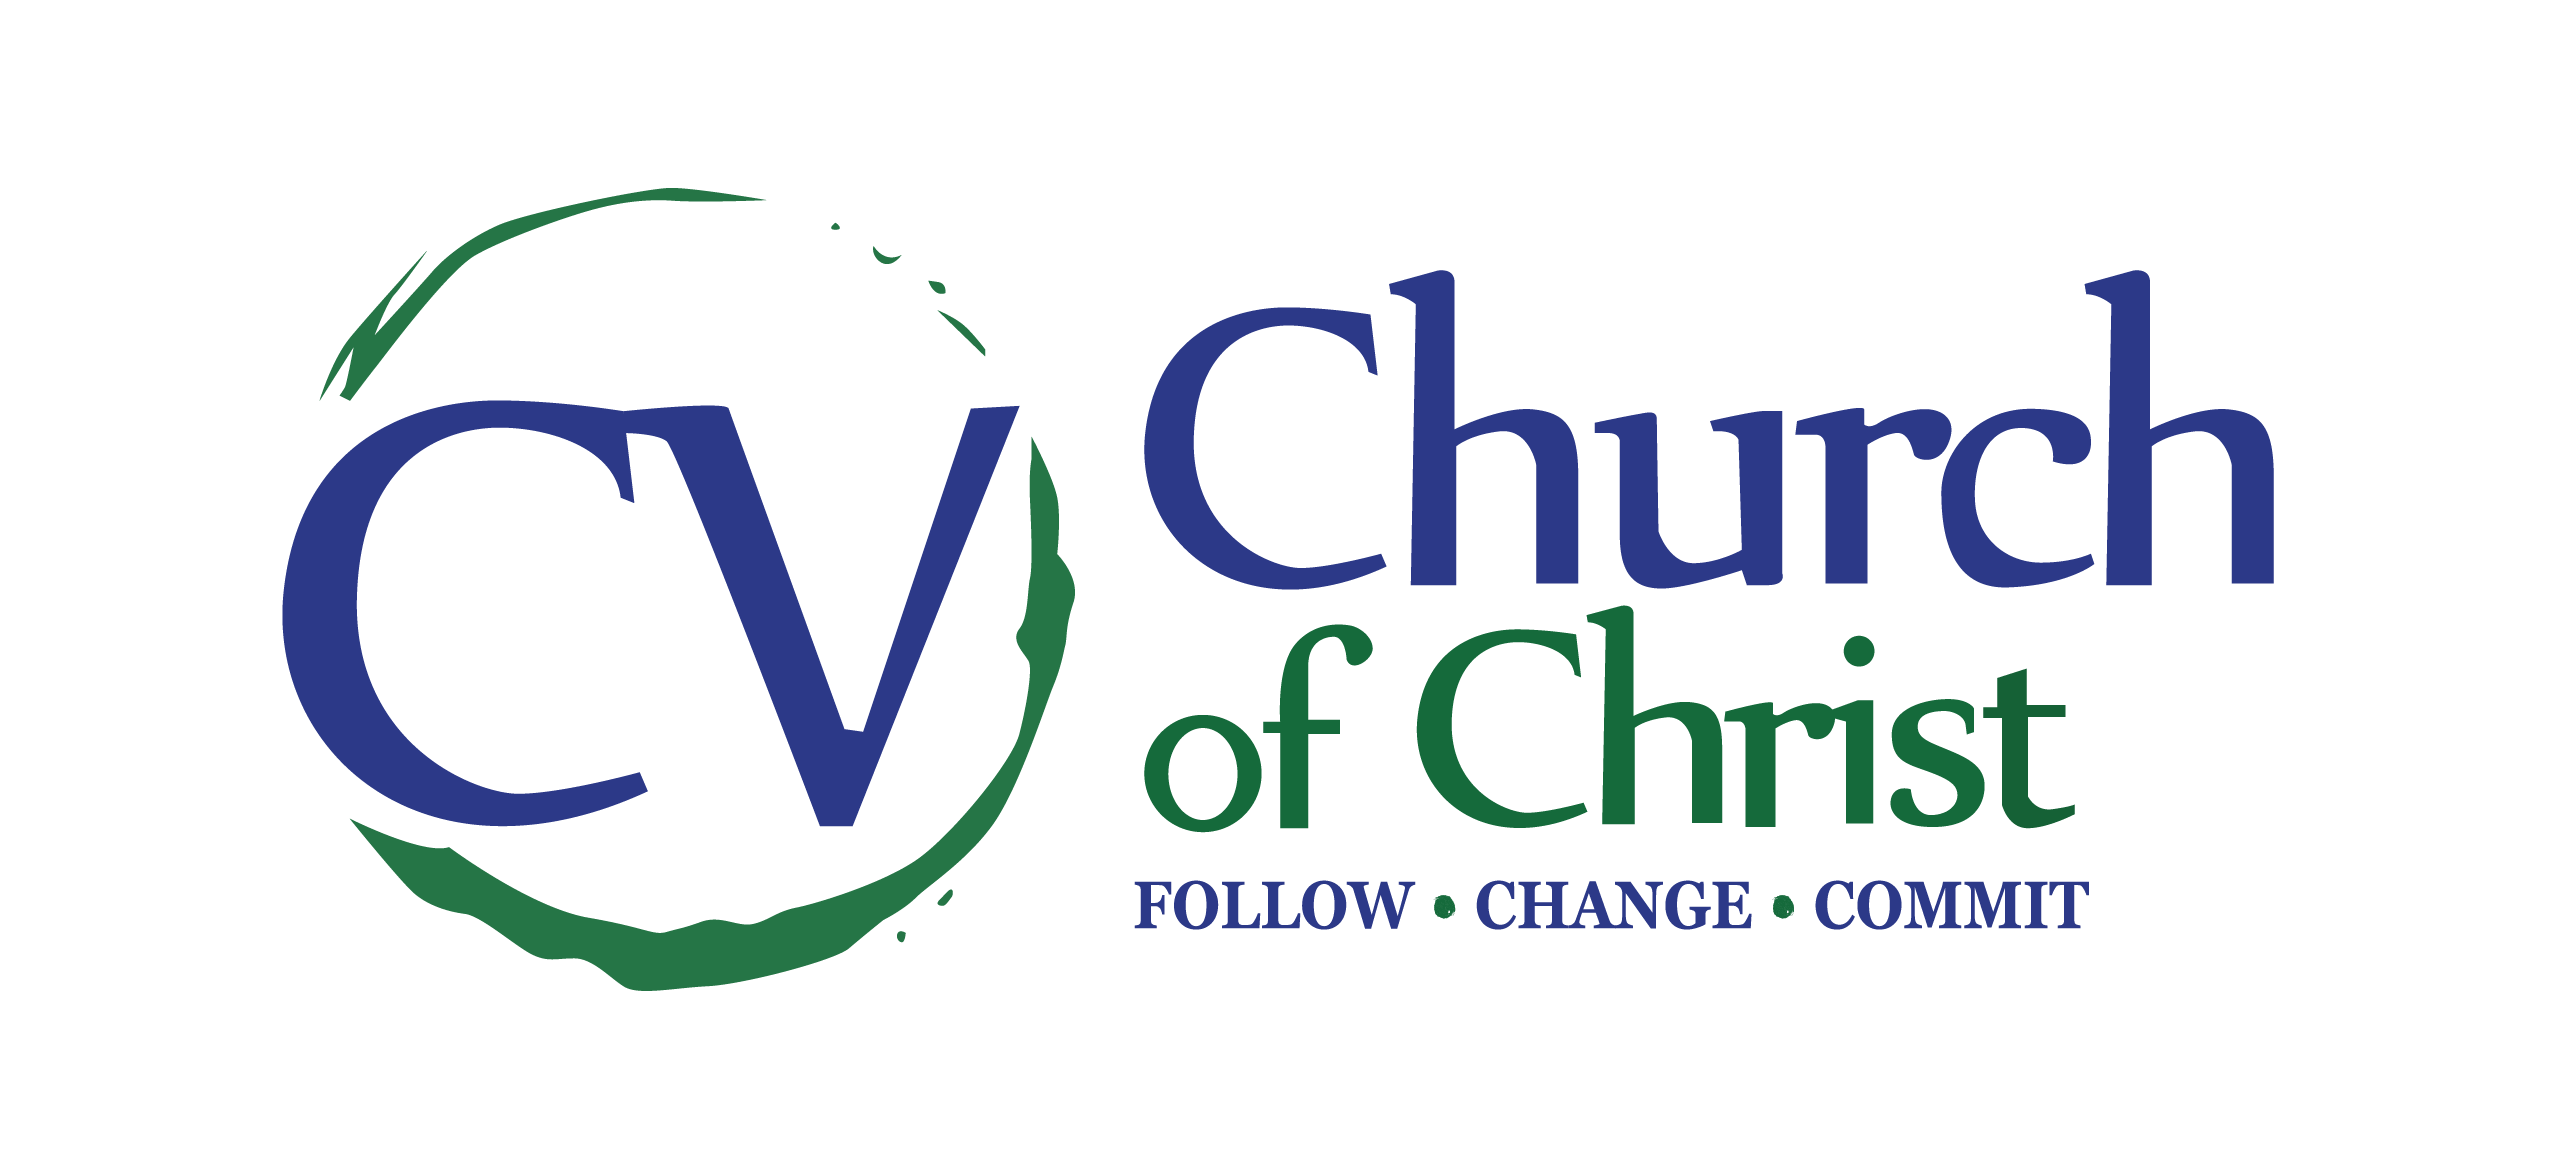 Conestoga Valley Church of Christ